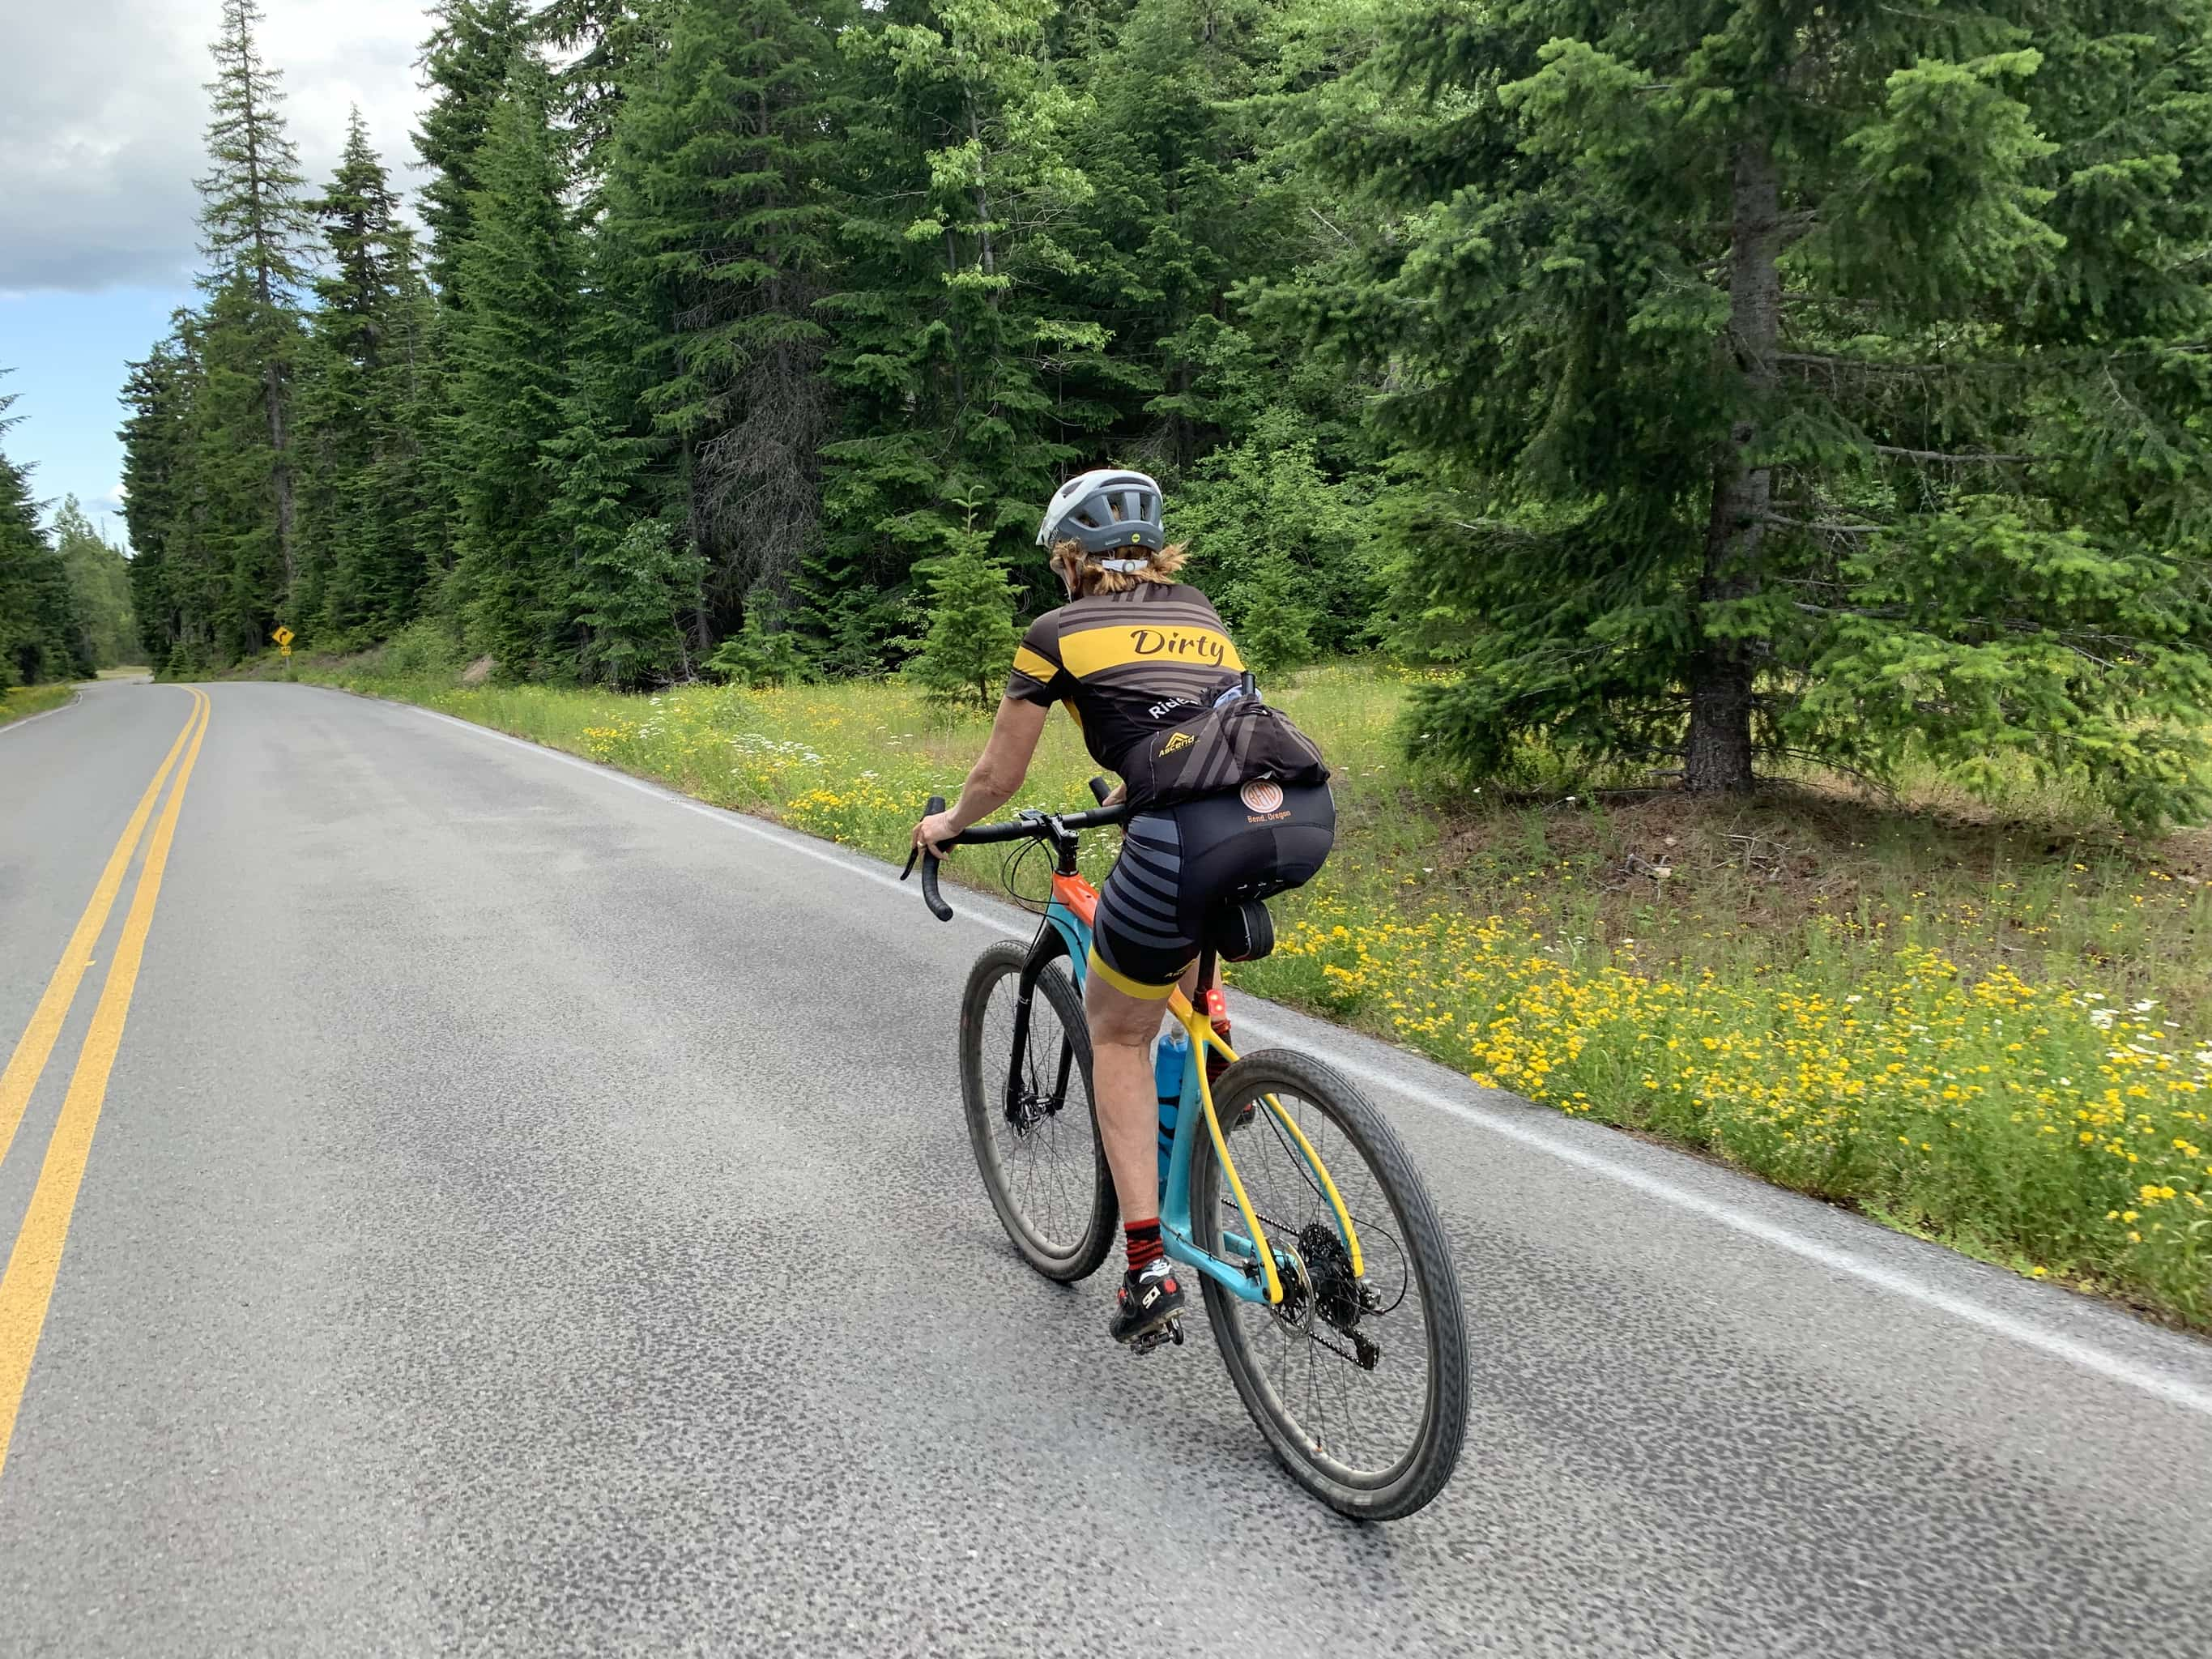 Bike rider on NF-22 with yellow flowers in the background north of White Salmon, WA.